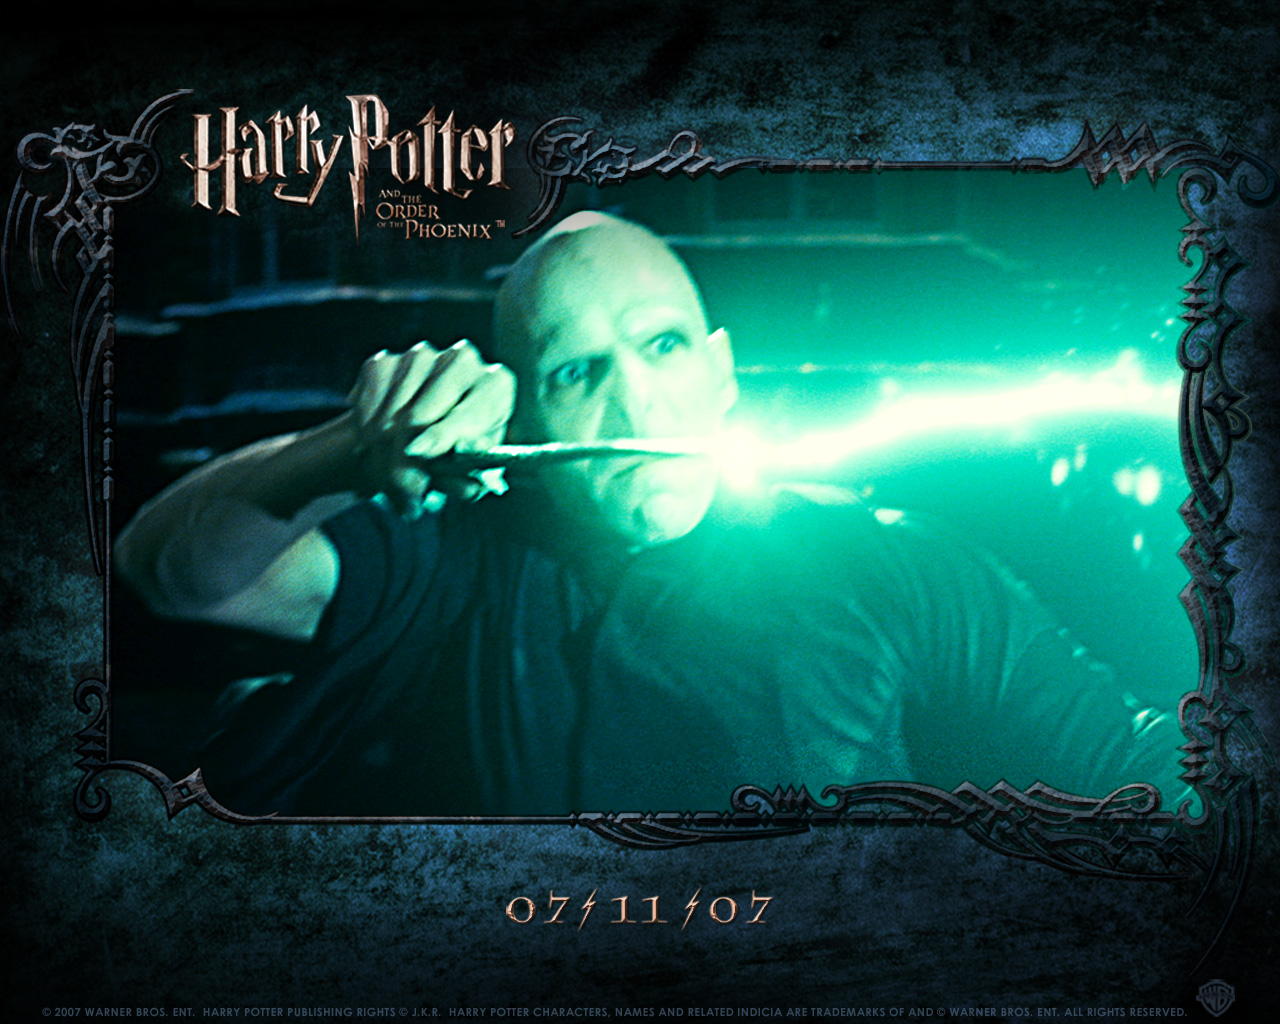 Harry Potter Wallpapers movie